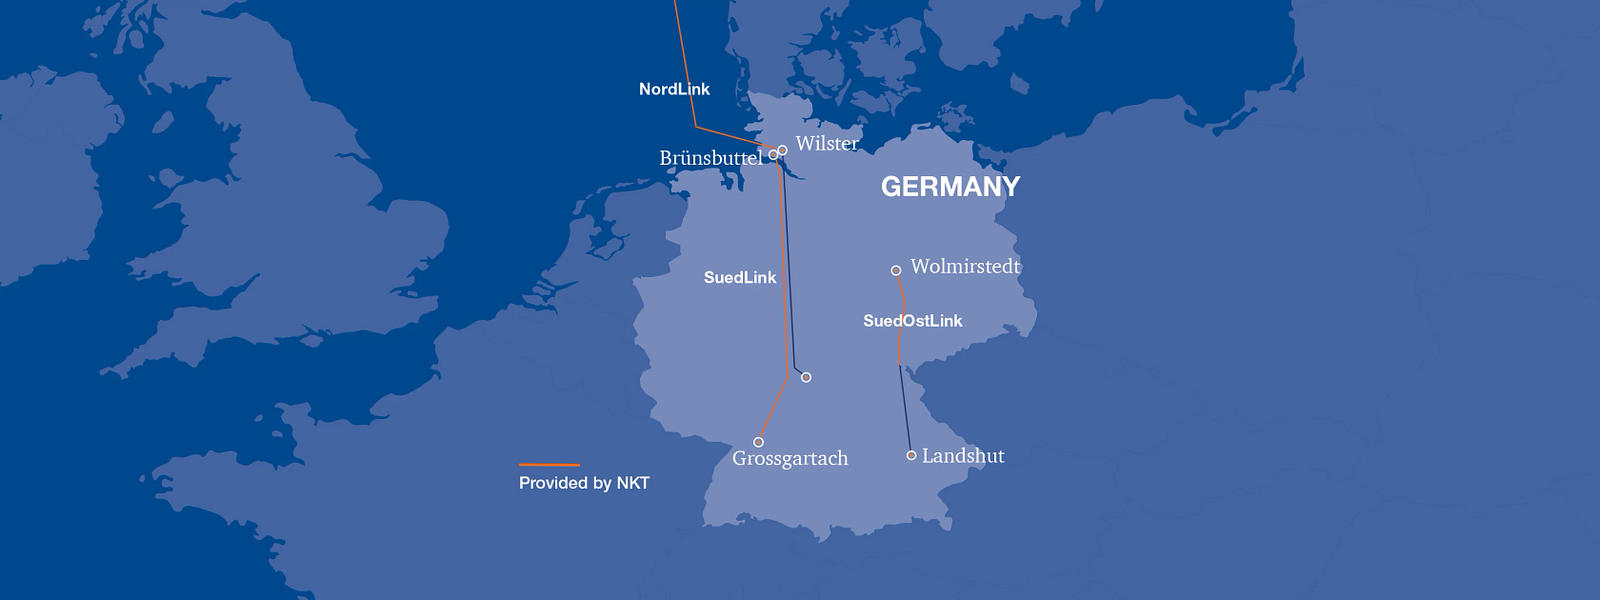 Germany map with corridor projects and NKT sections